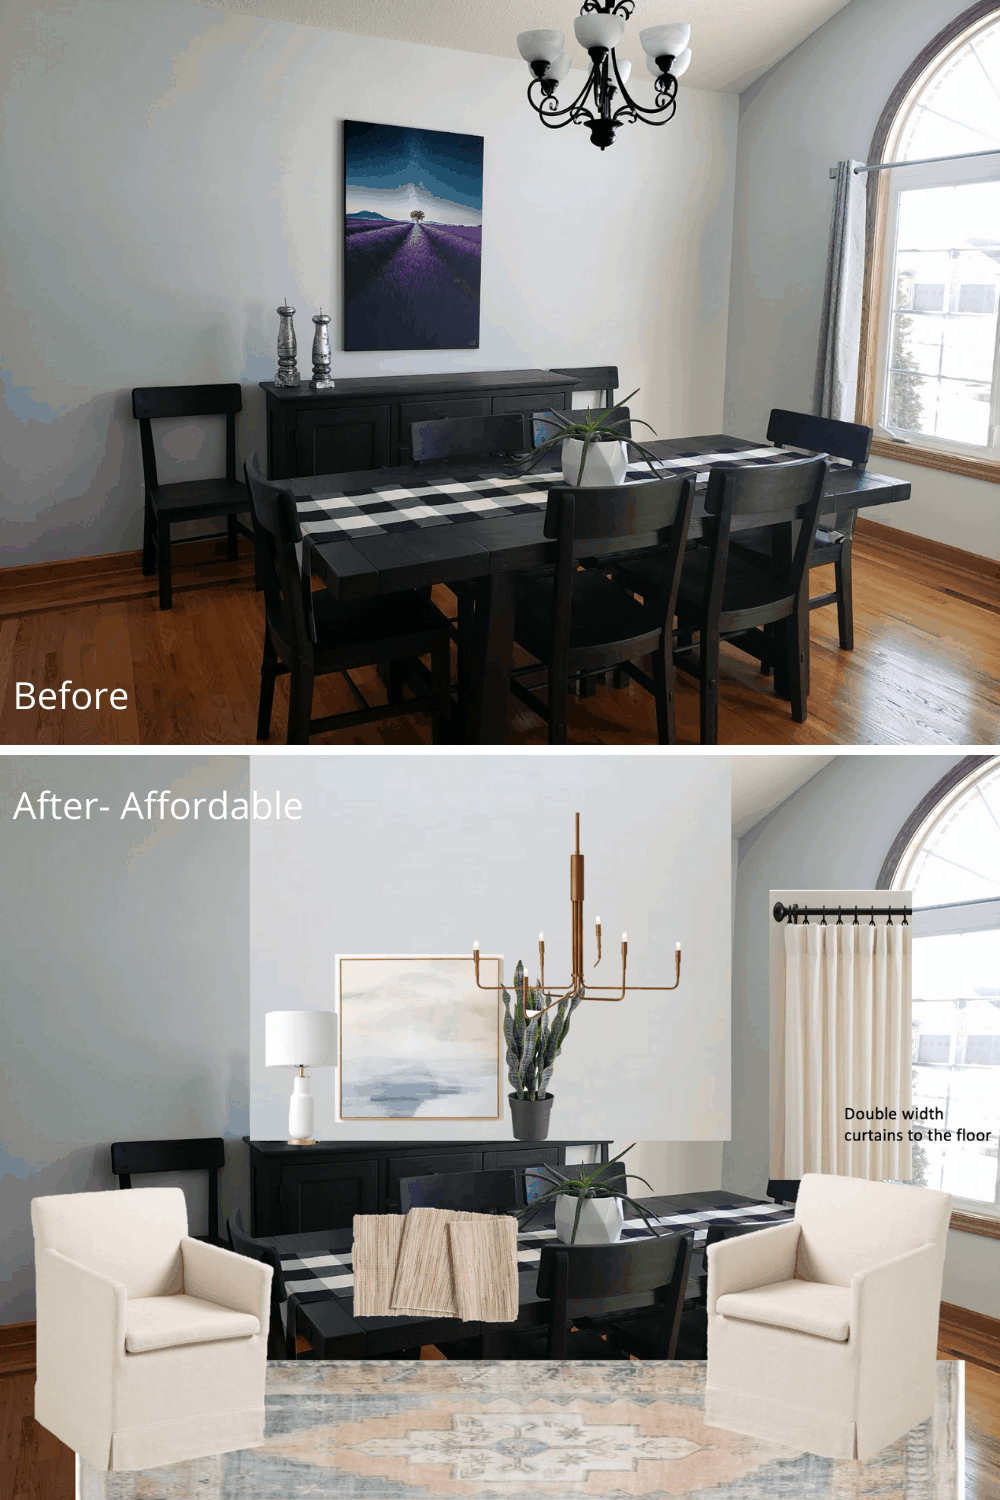 Ways to warm up a dining room with lighting and curtains.